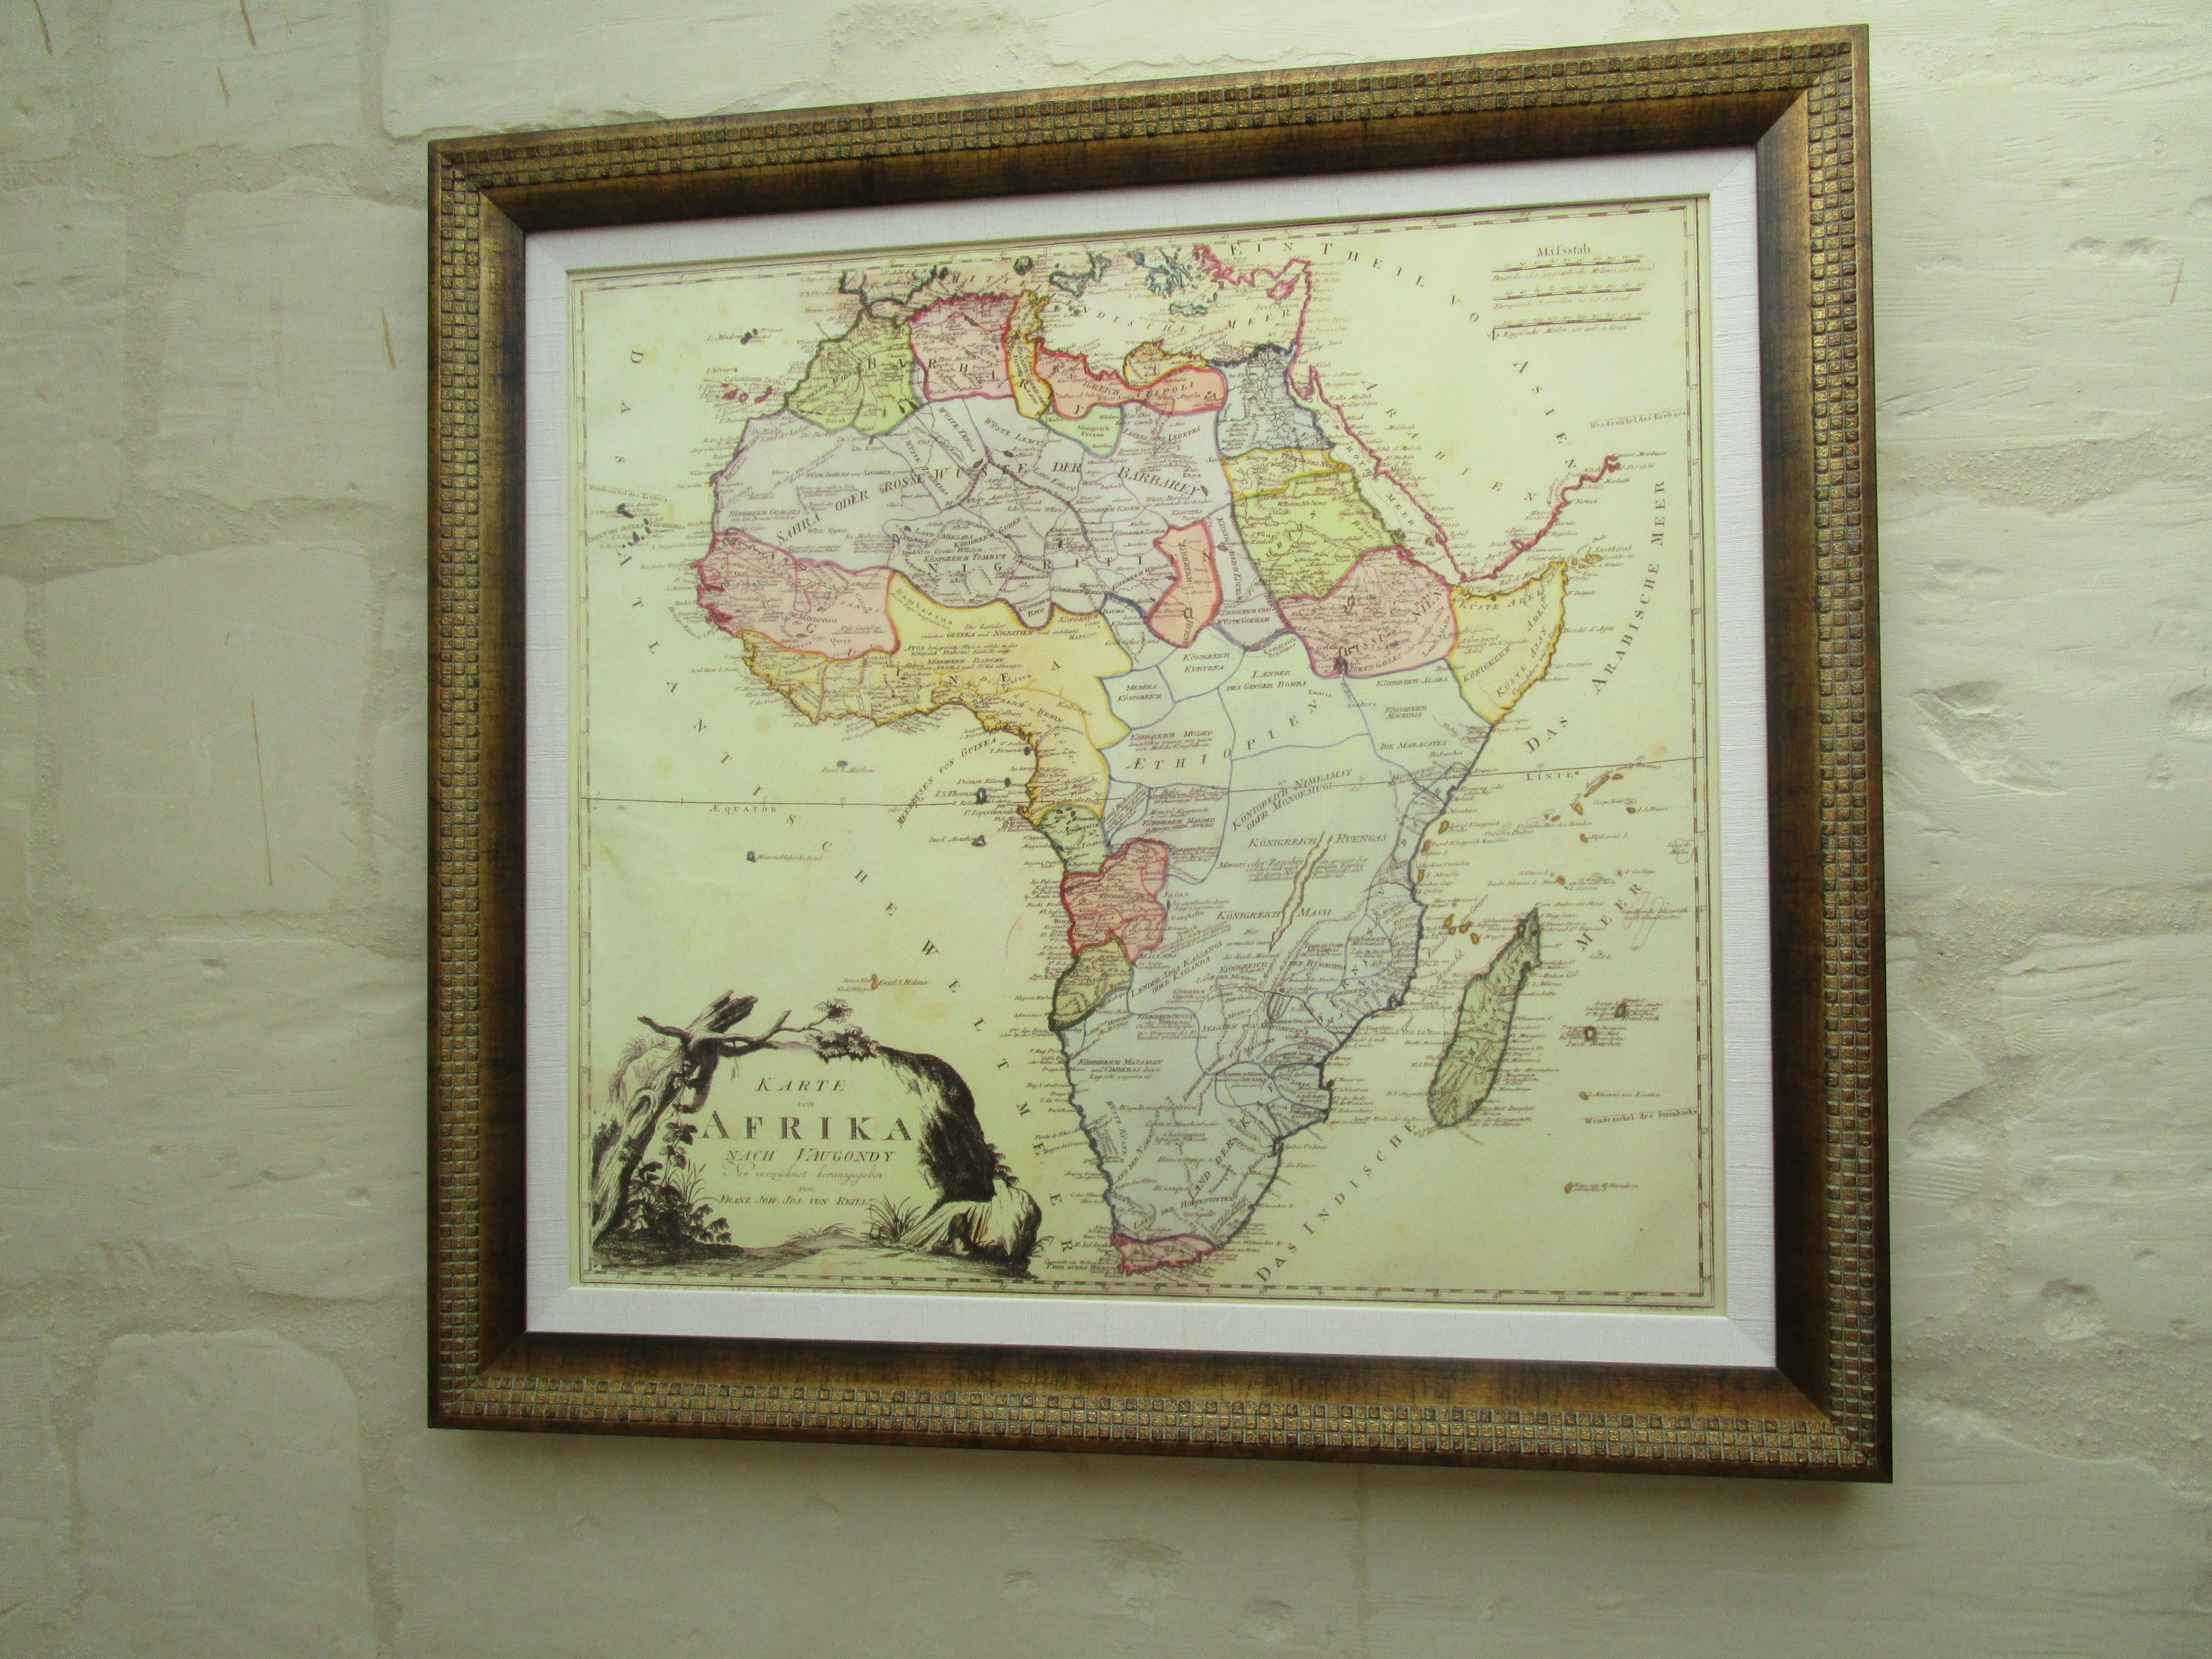 Old map of Africa, Africa map, Map, Vintage world maps